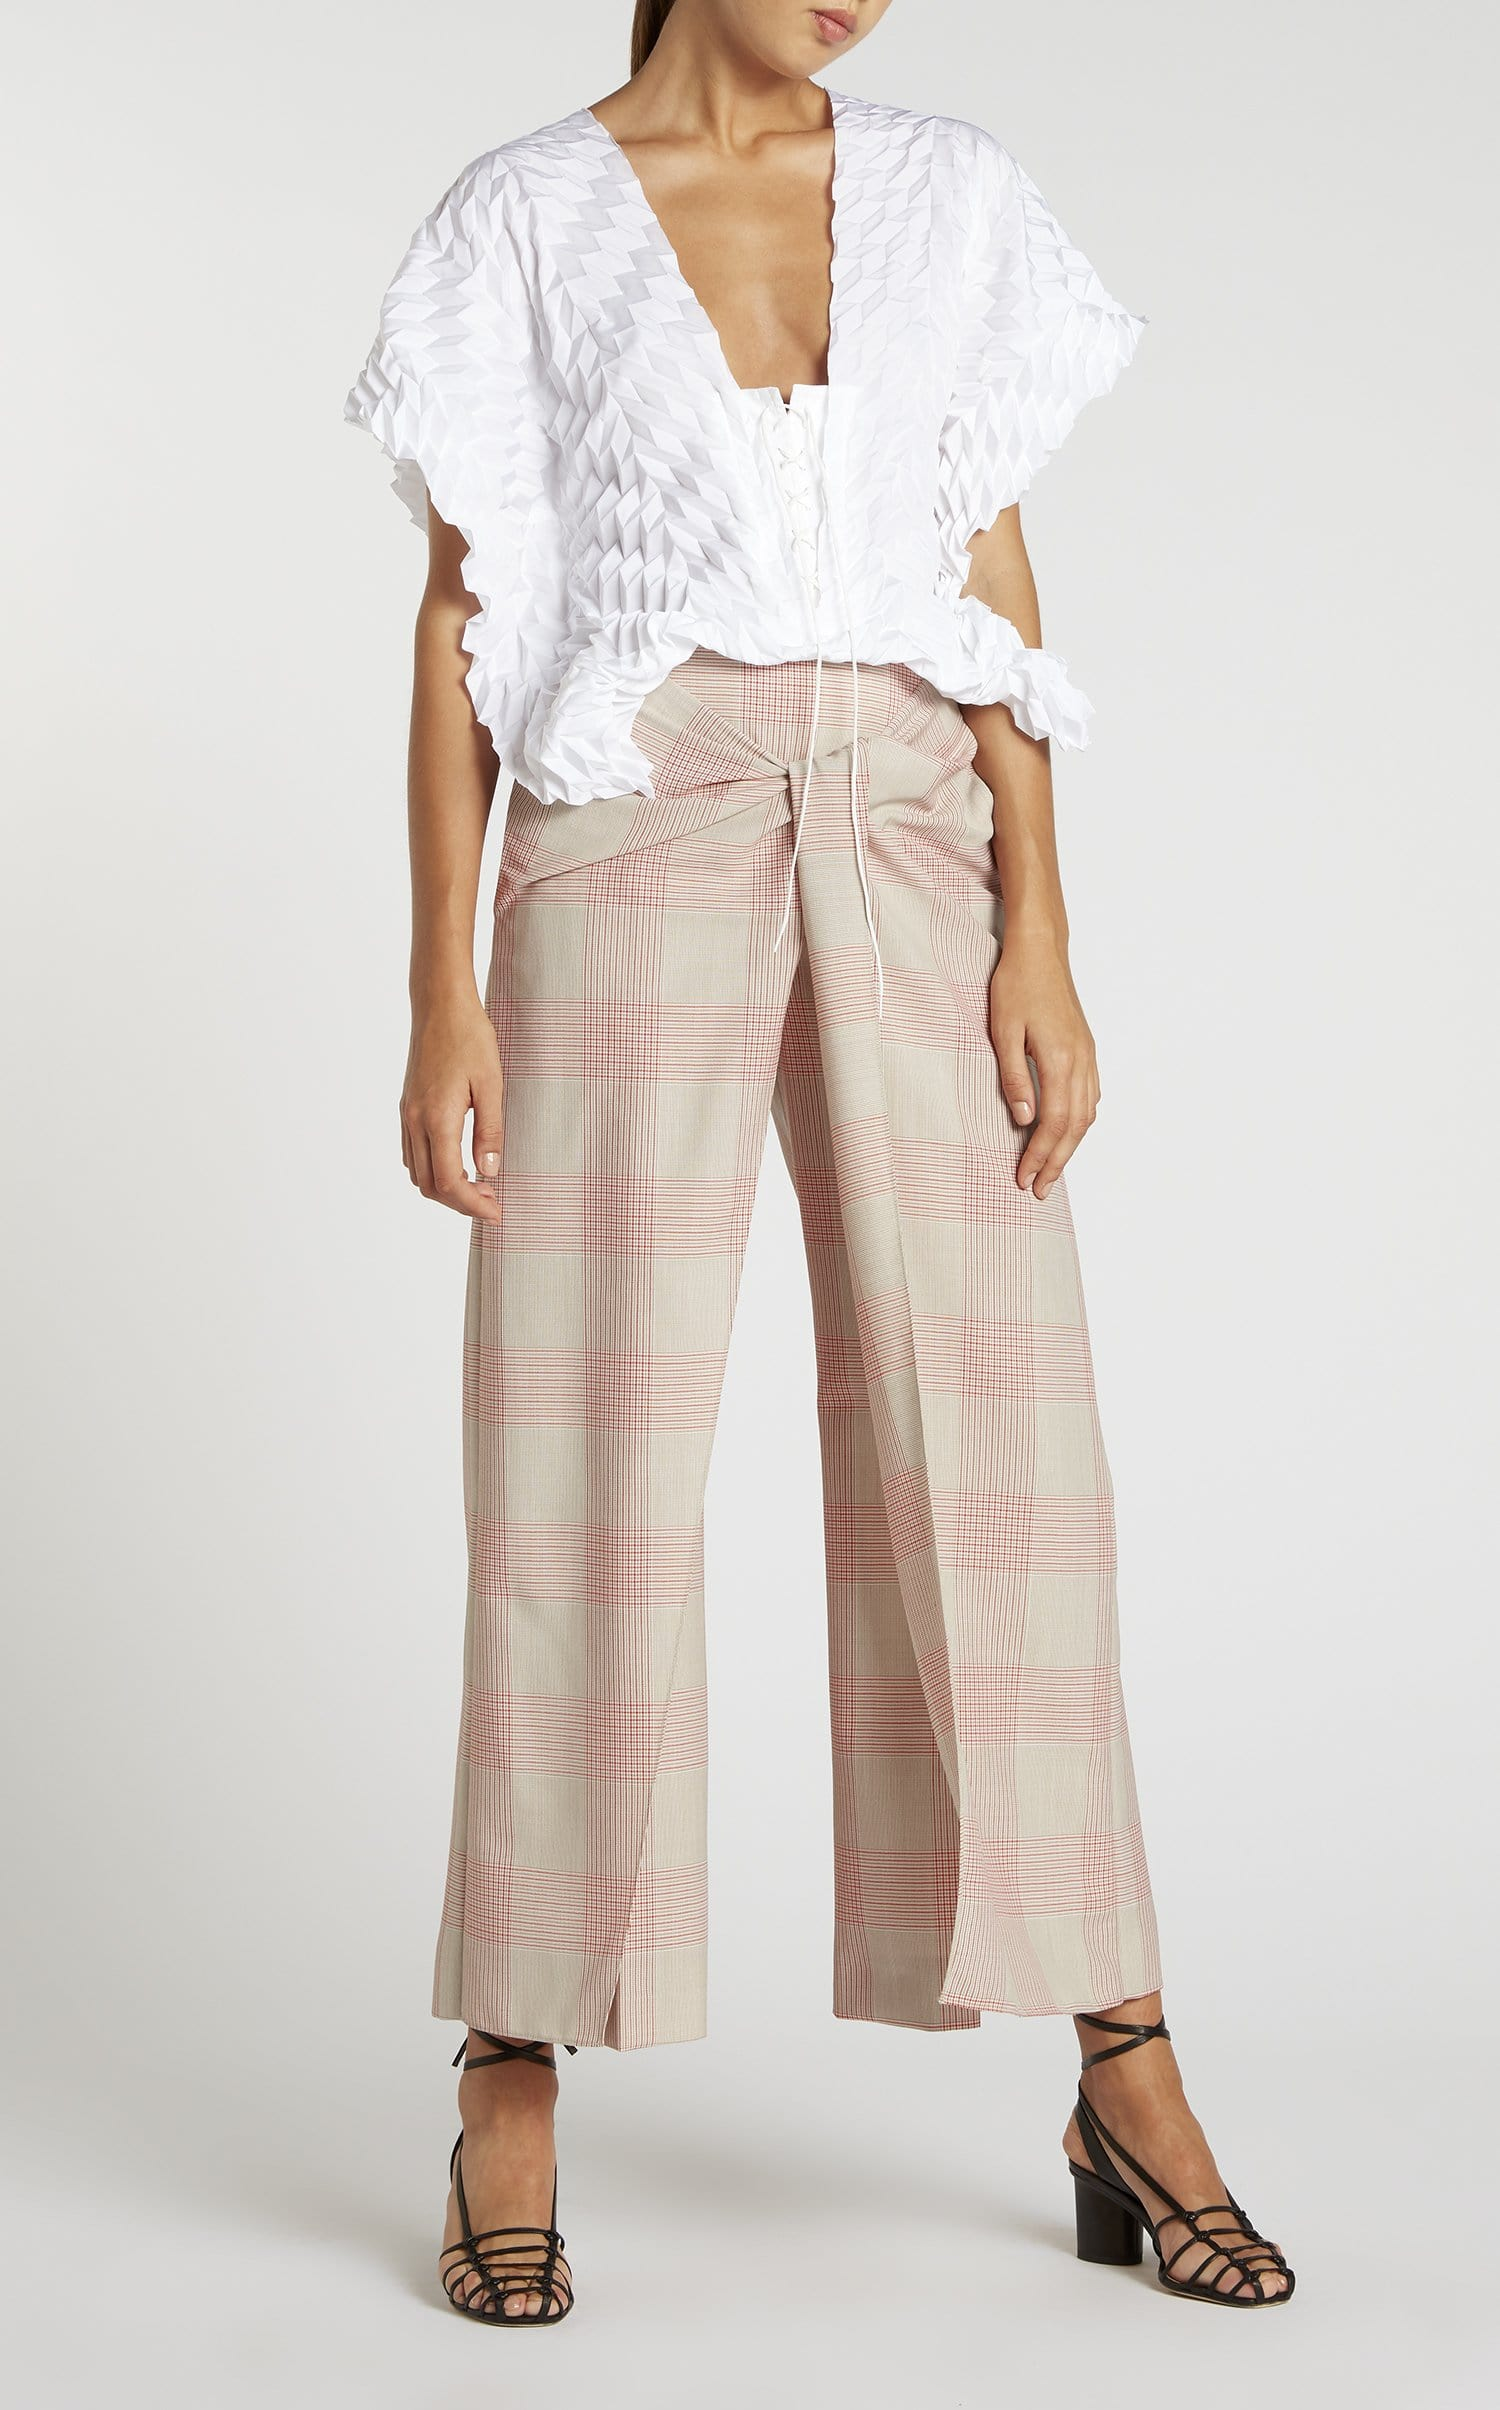 Fenwick Trouser In Oatmeal from Roland Mouret